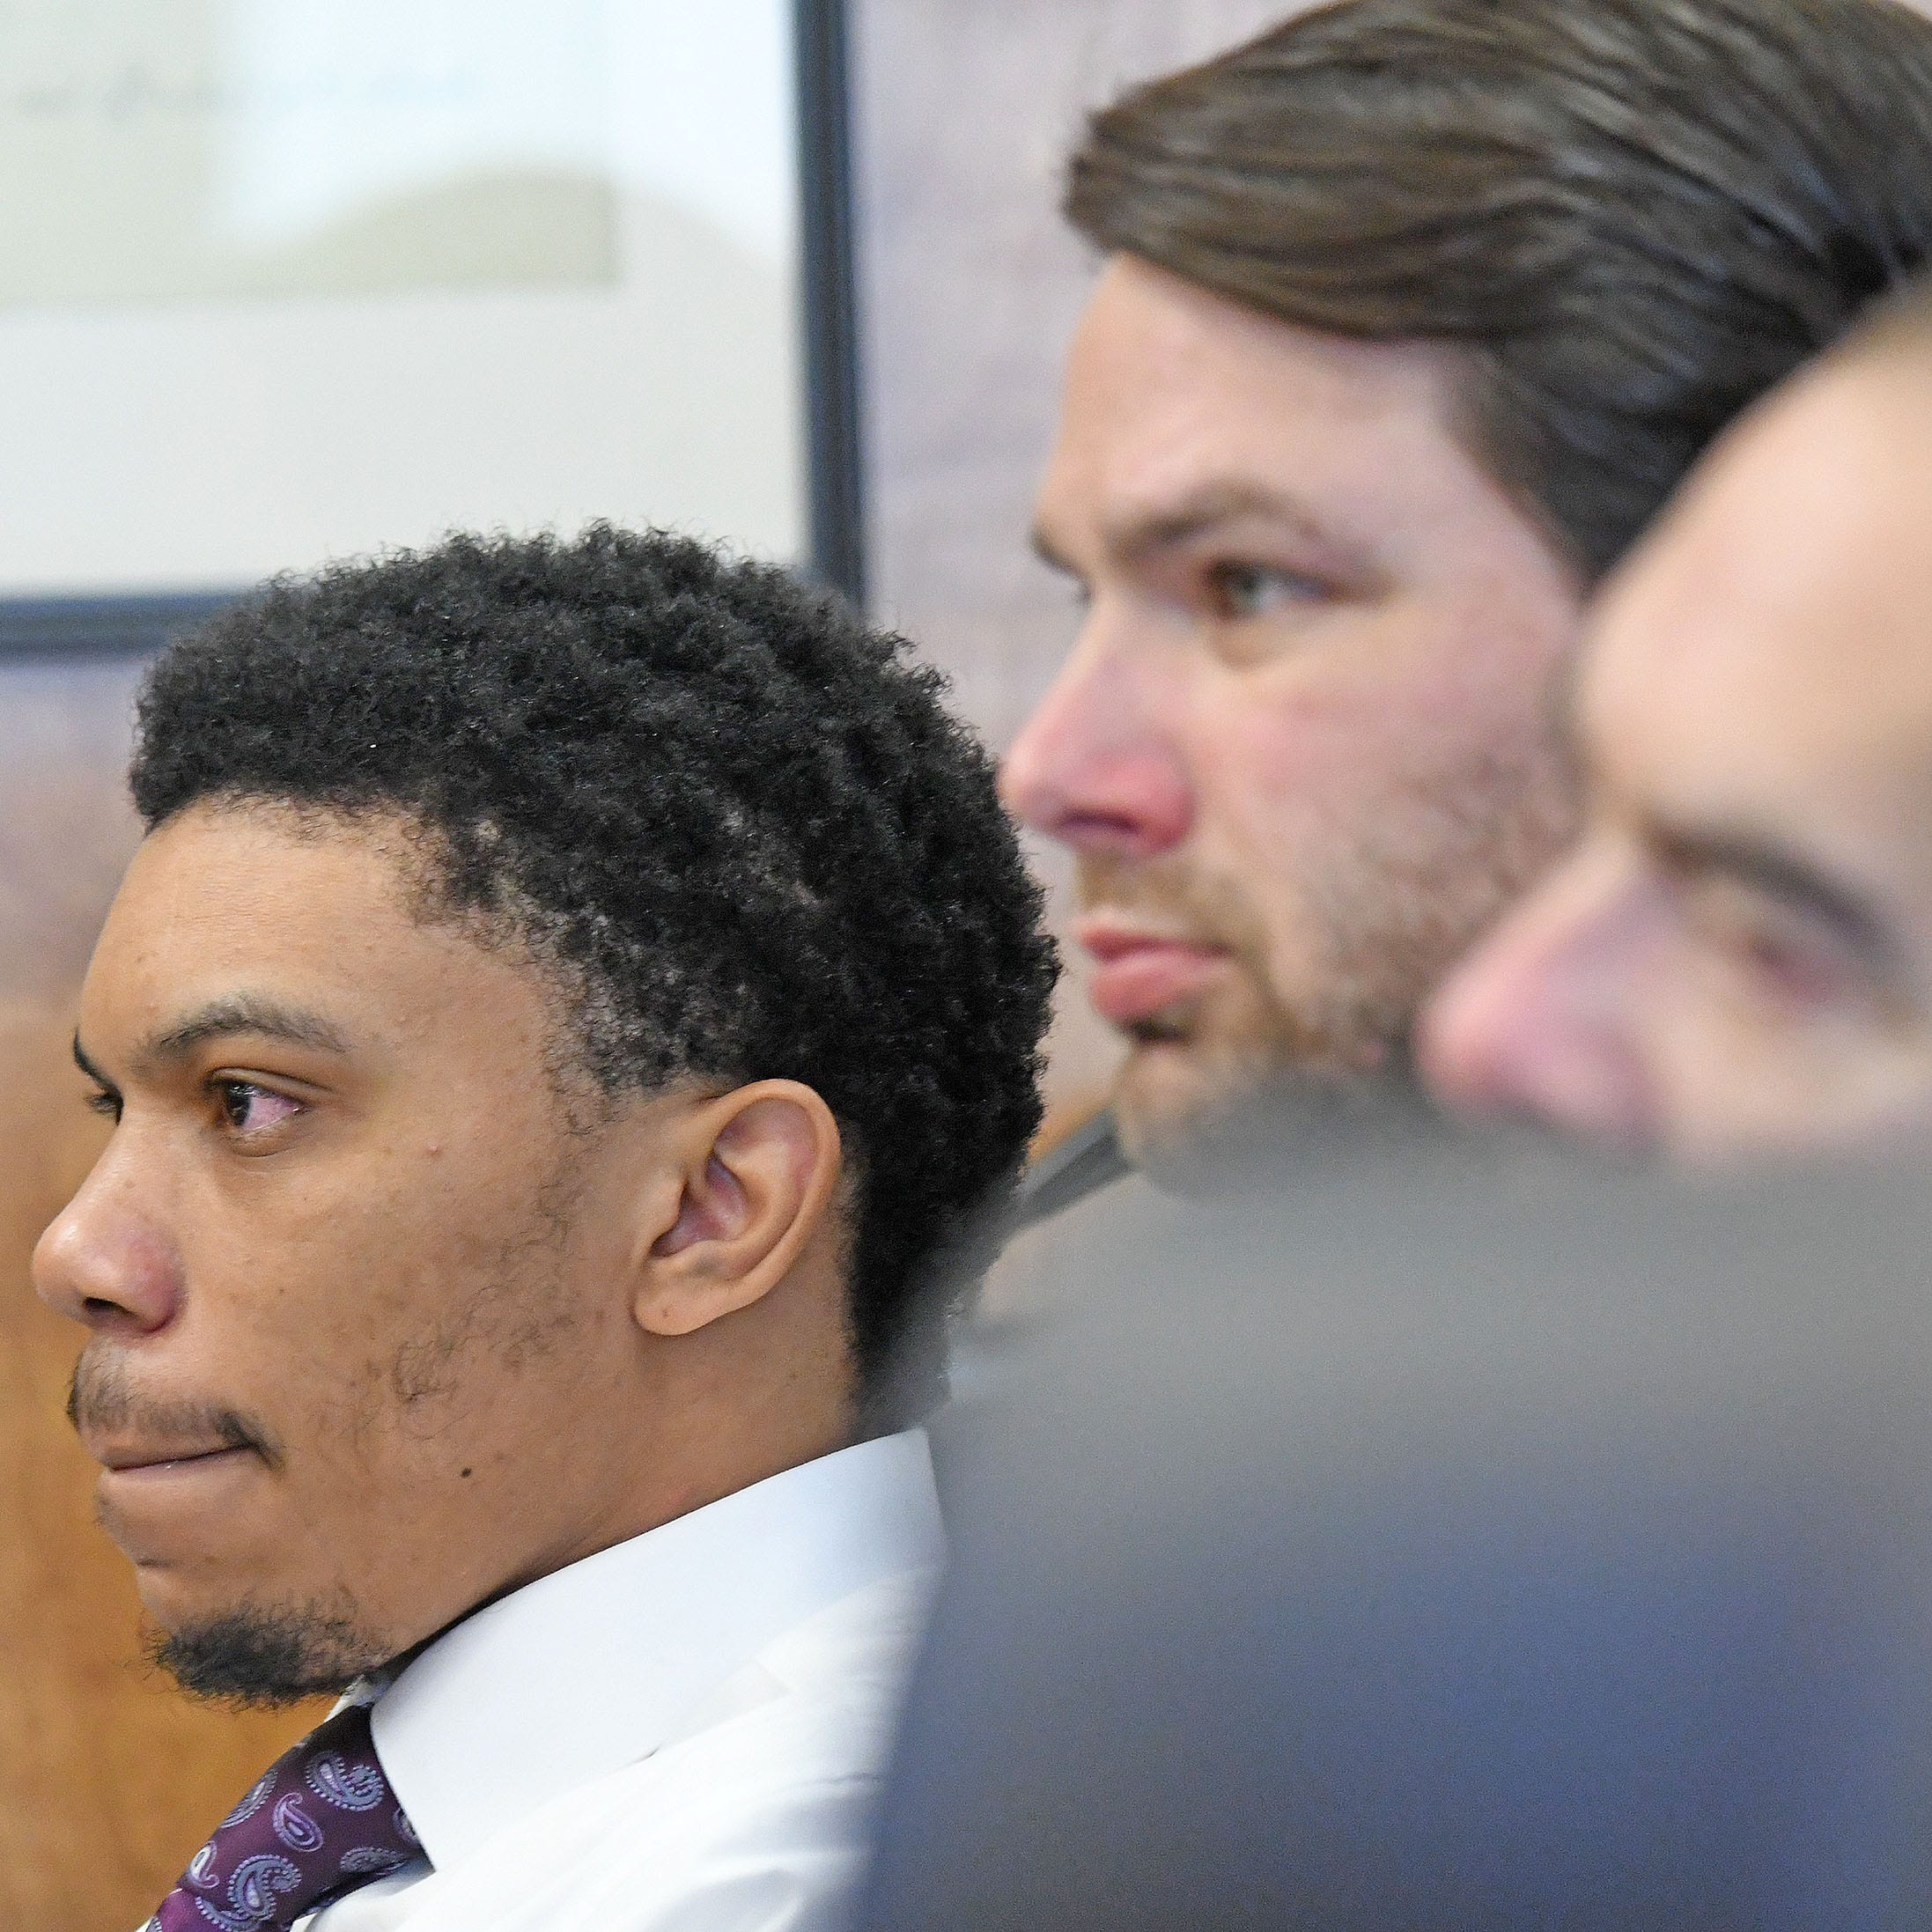 Expert witnesses offer testimony on 4th day of Dowdell murder trial